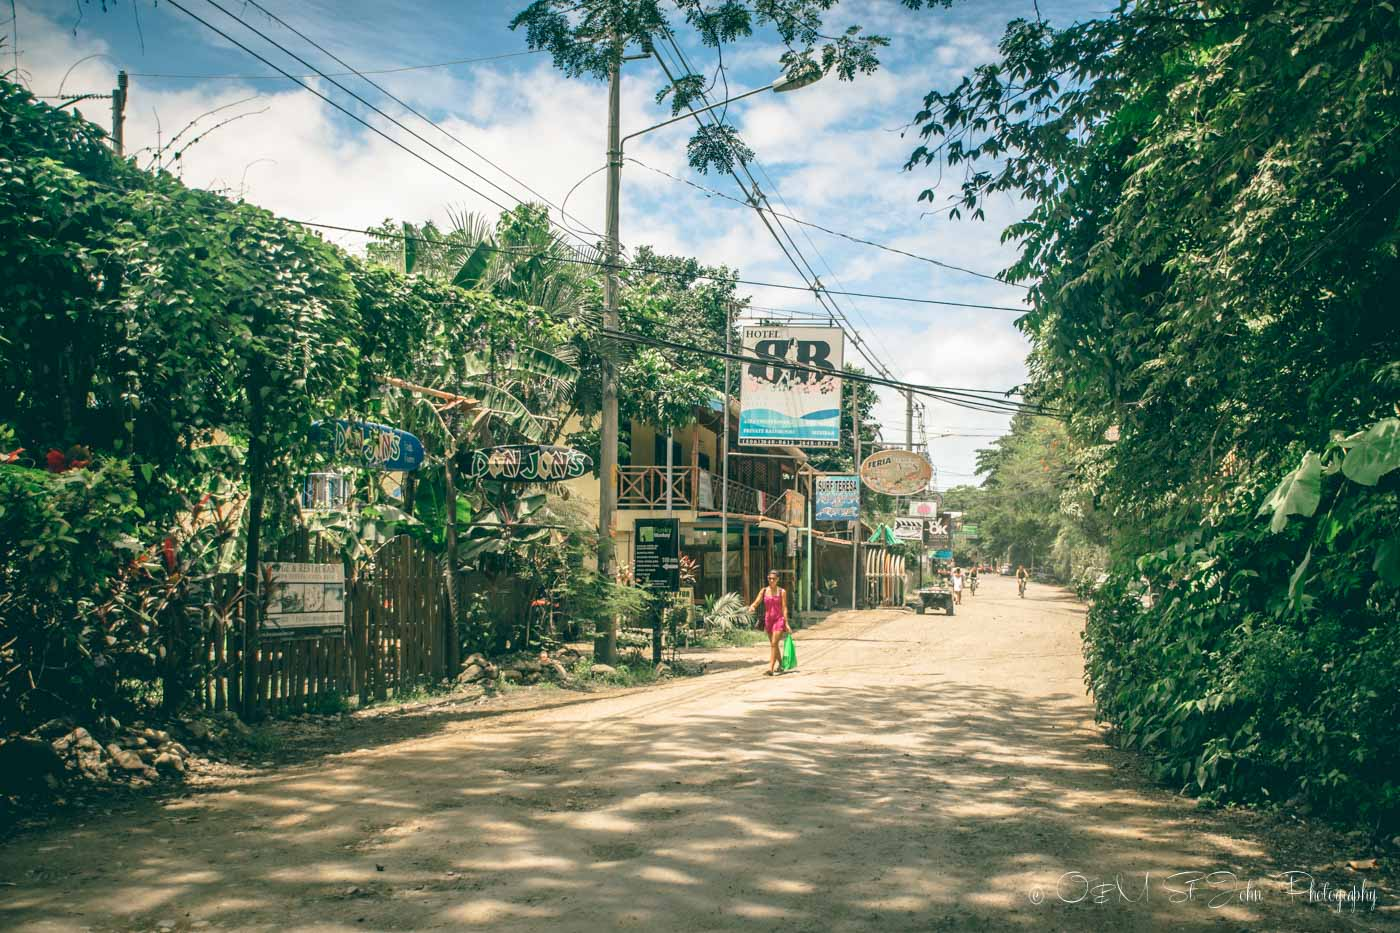 Backpacking in Costa Rica: Main road in Santa Teresa